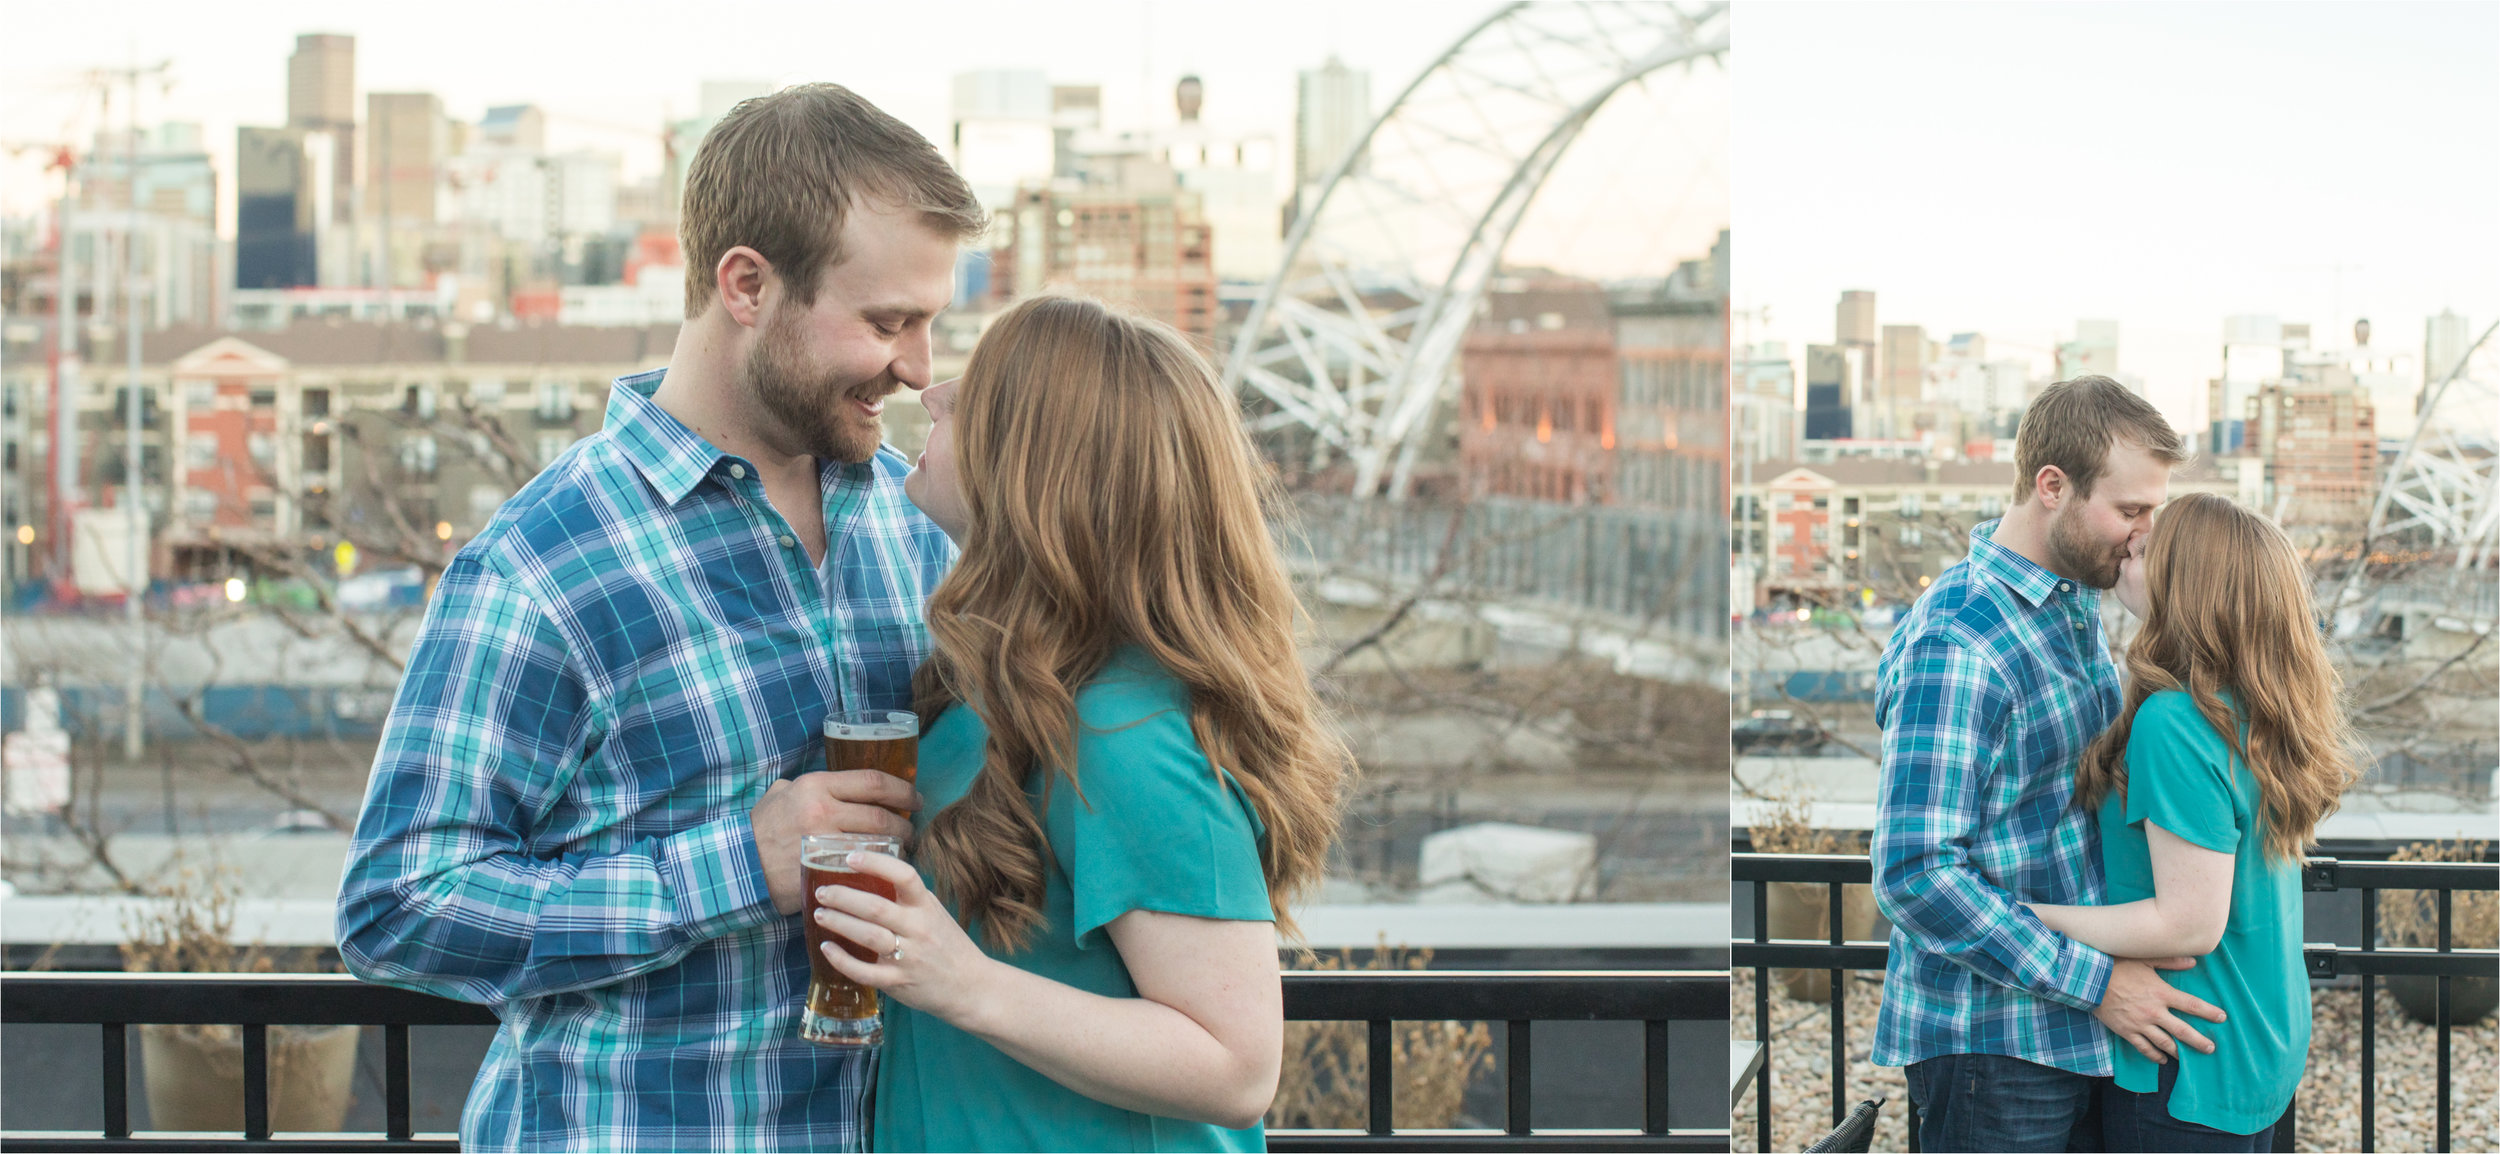 Molly & Tyler Downtown Denver Engagement Session 9.jpg